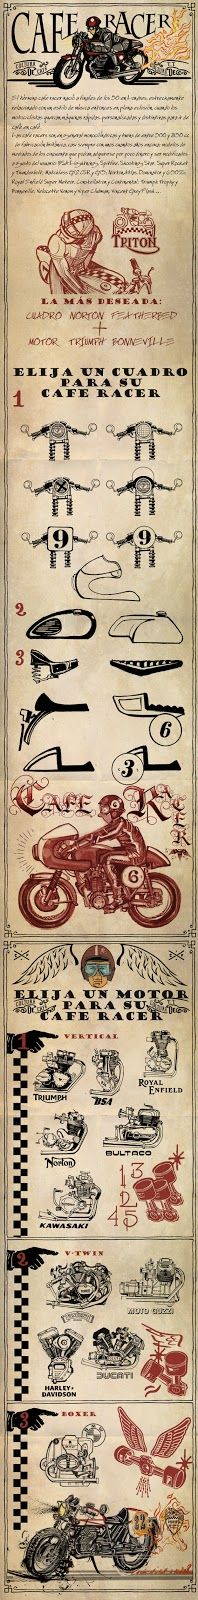 Café Racer Infographic - illustration by Quique Maqueda